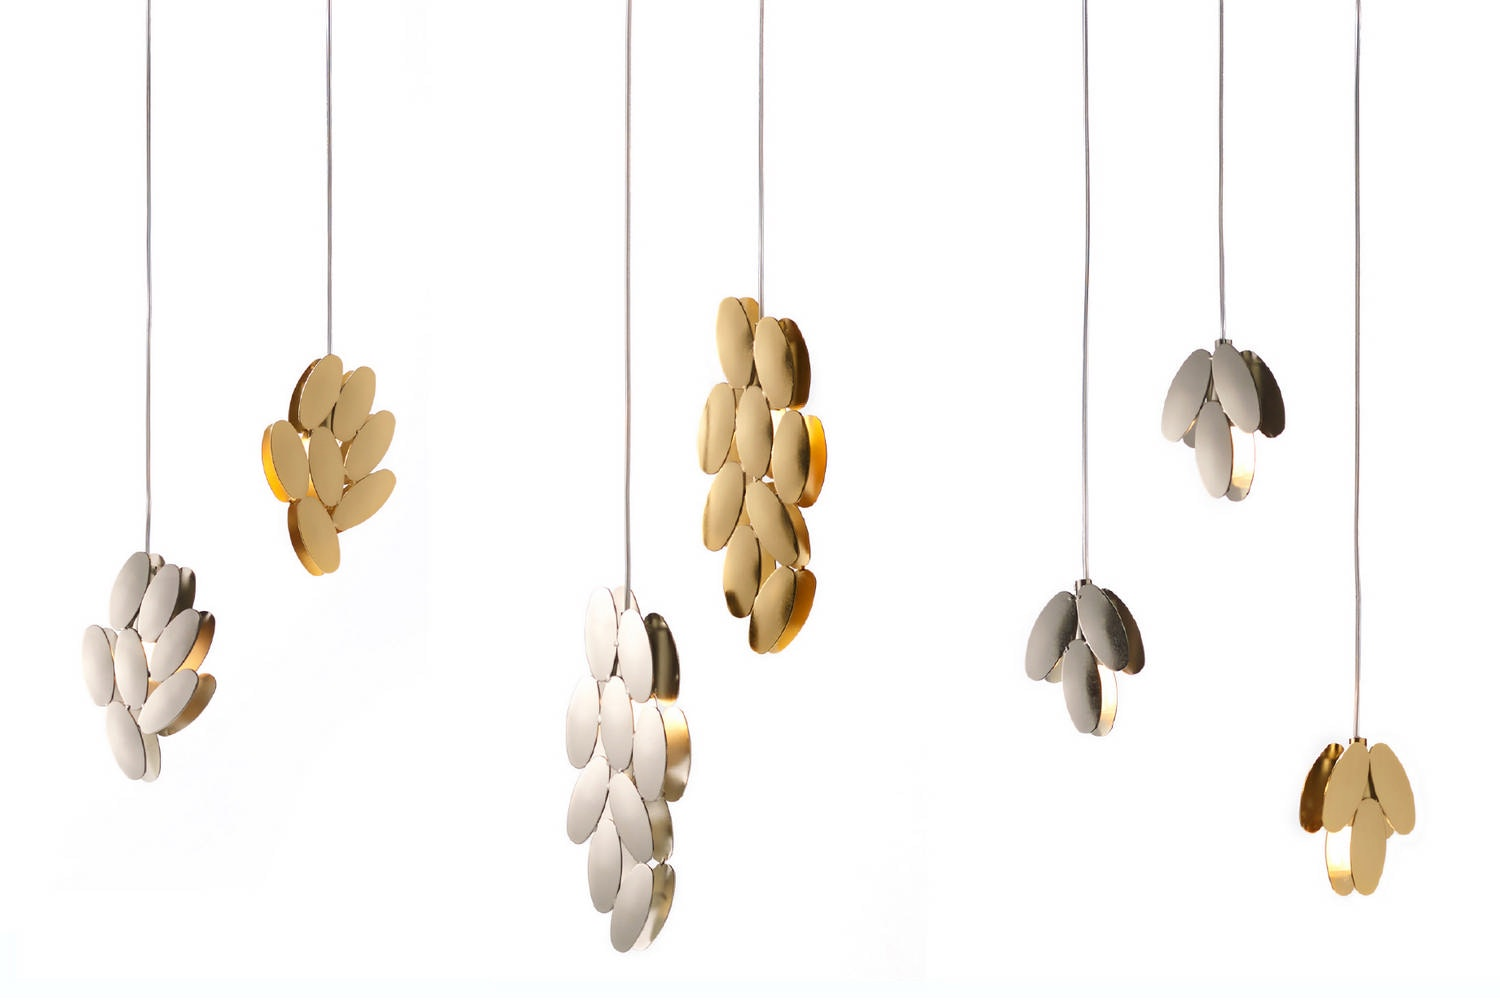 Foliae Suspension Lamp by Roberto Mora for Opinion Ciatti